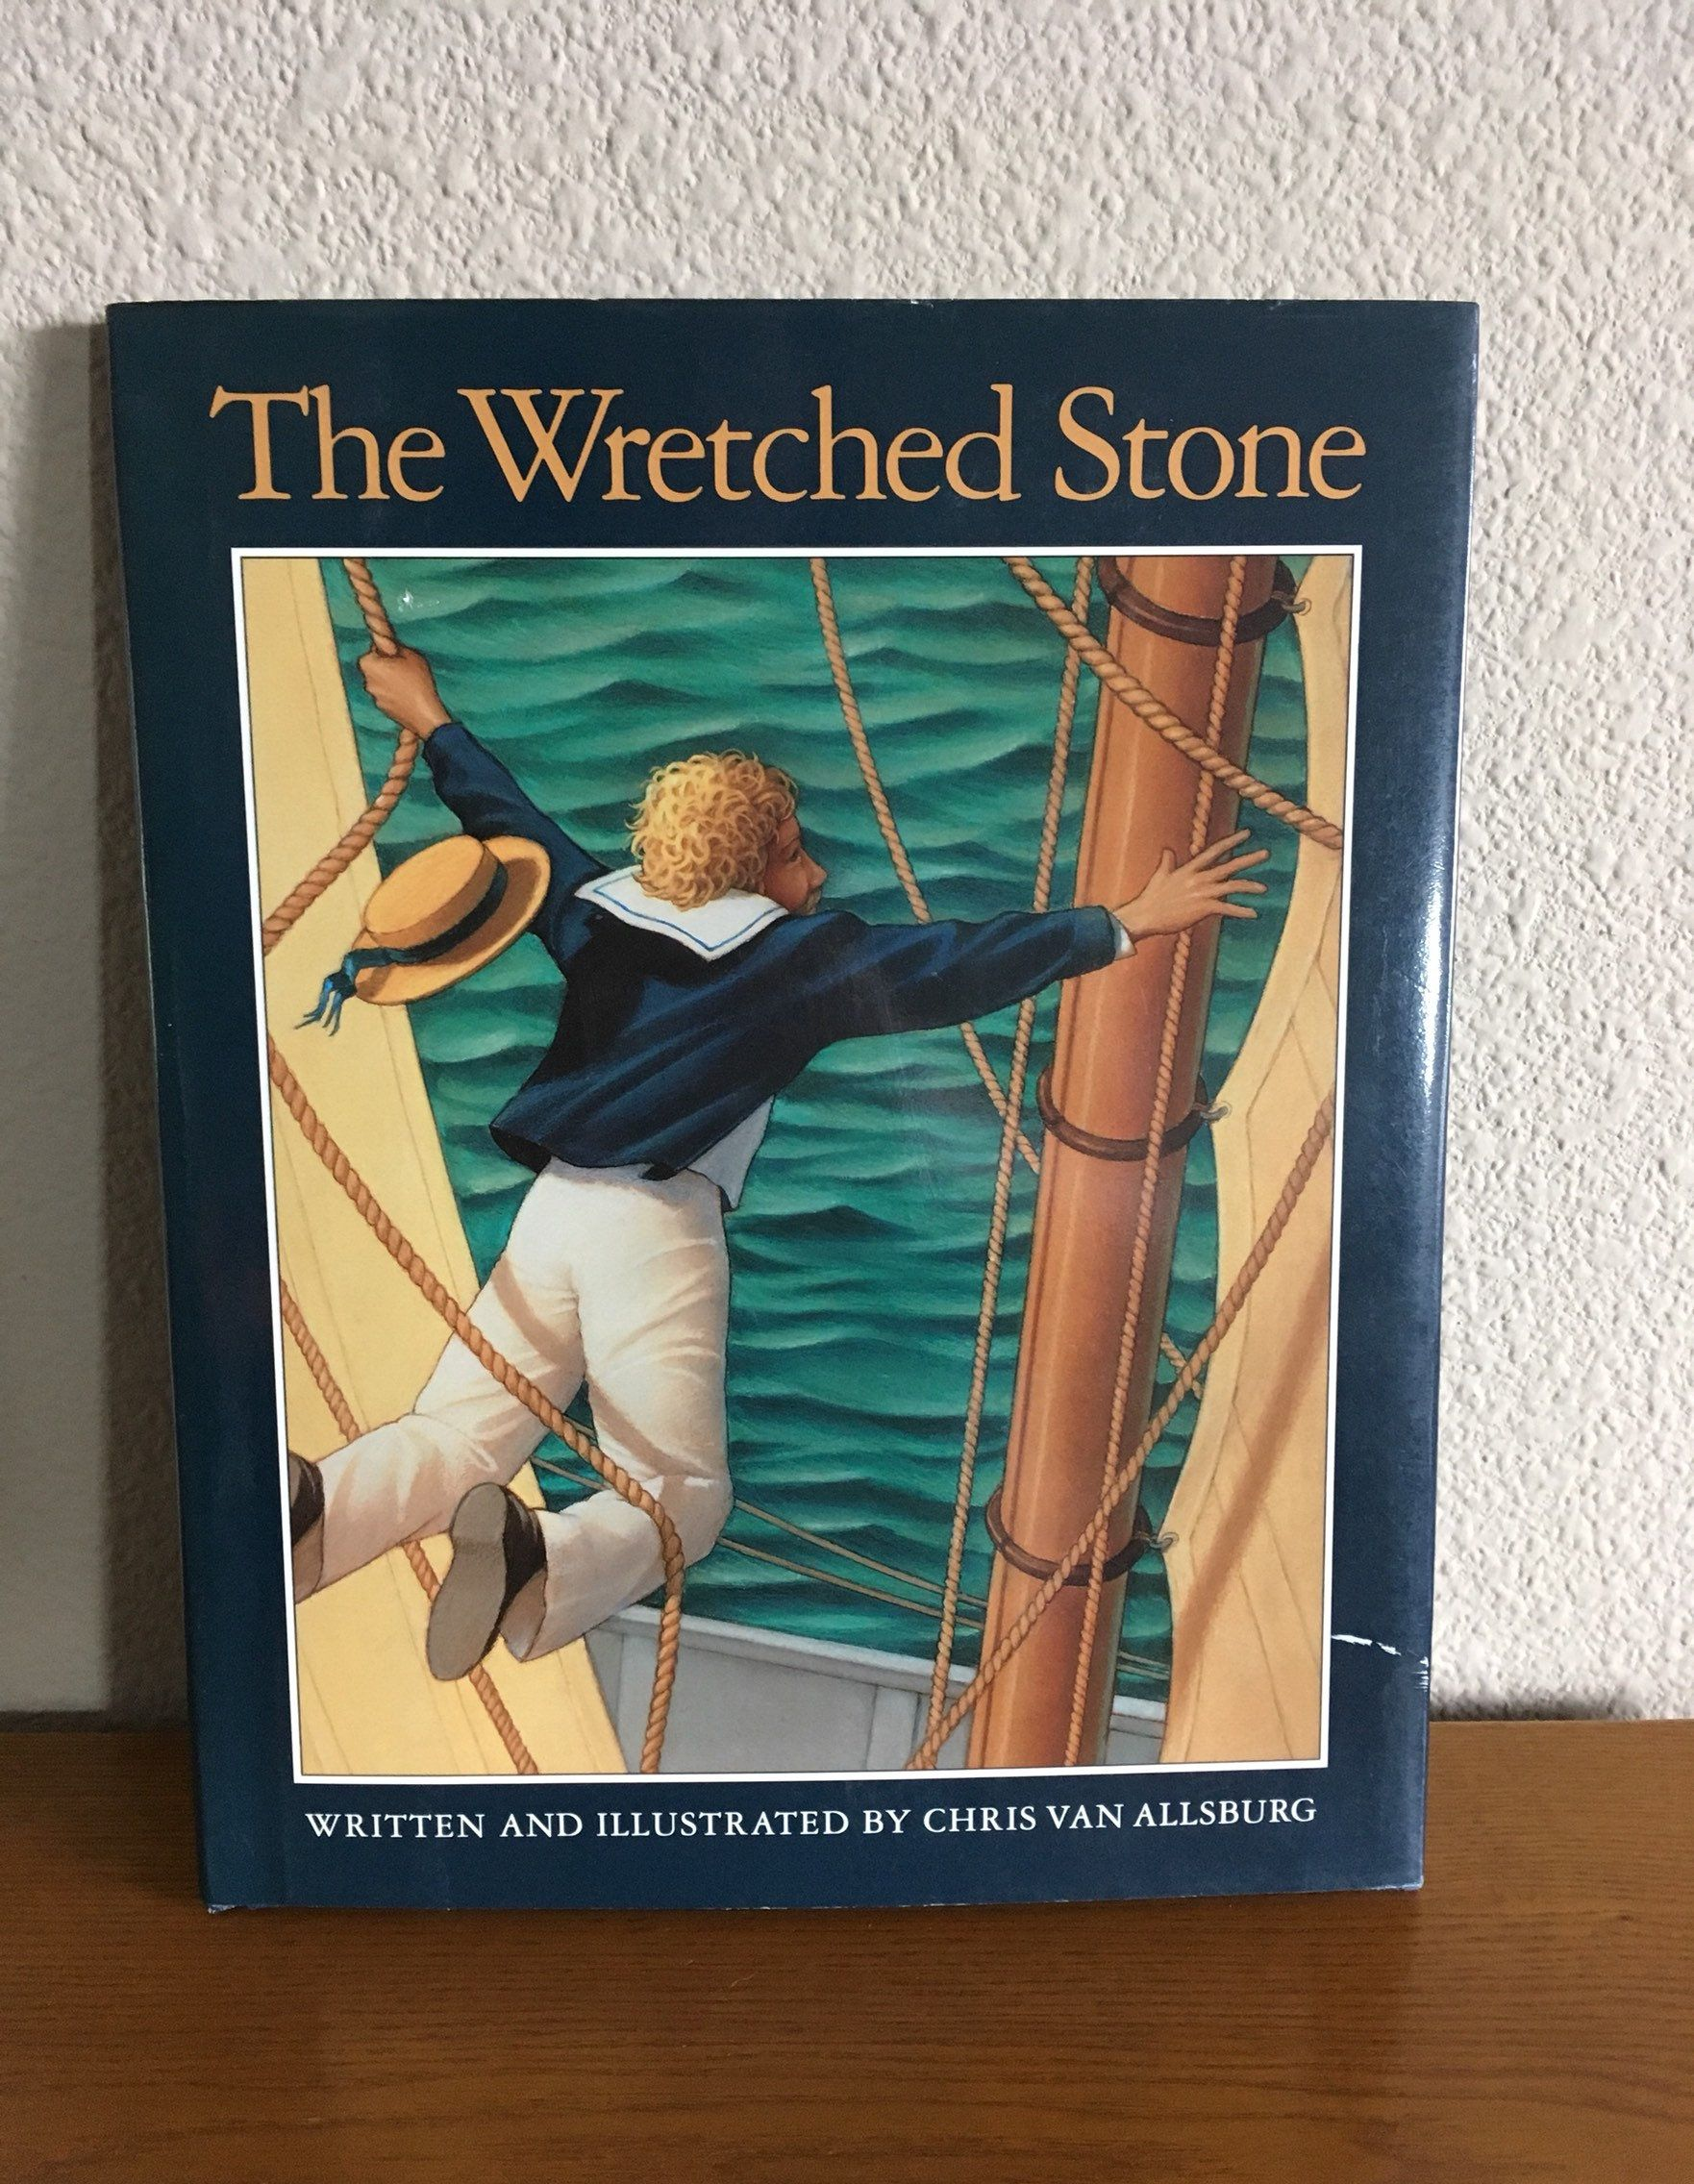 First Edition First Printing Of The Wreched Stone By Chris